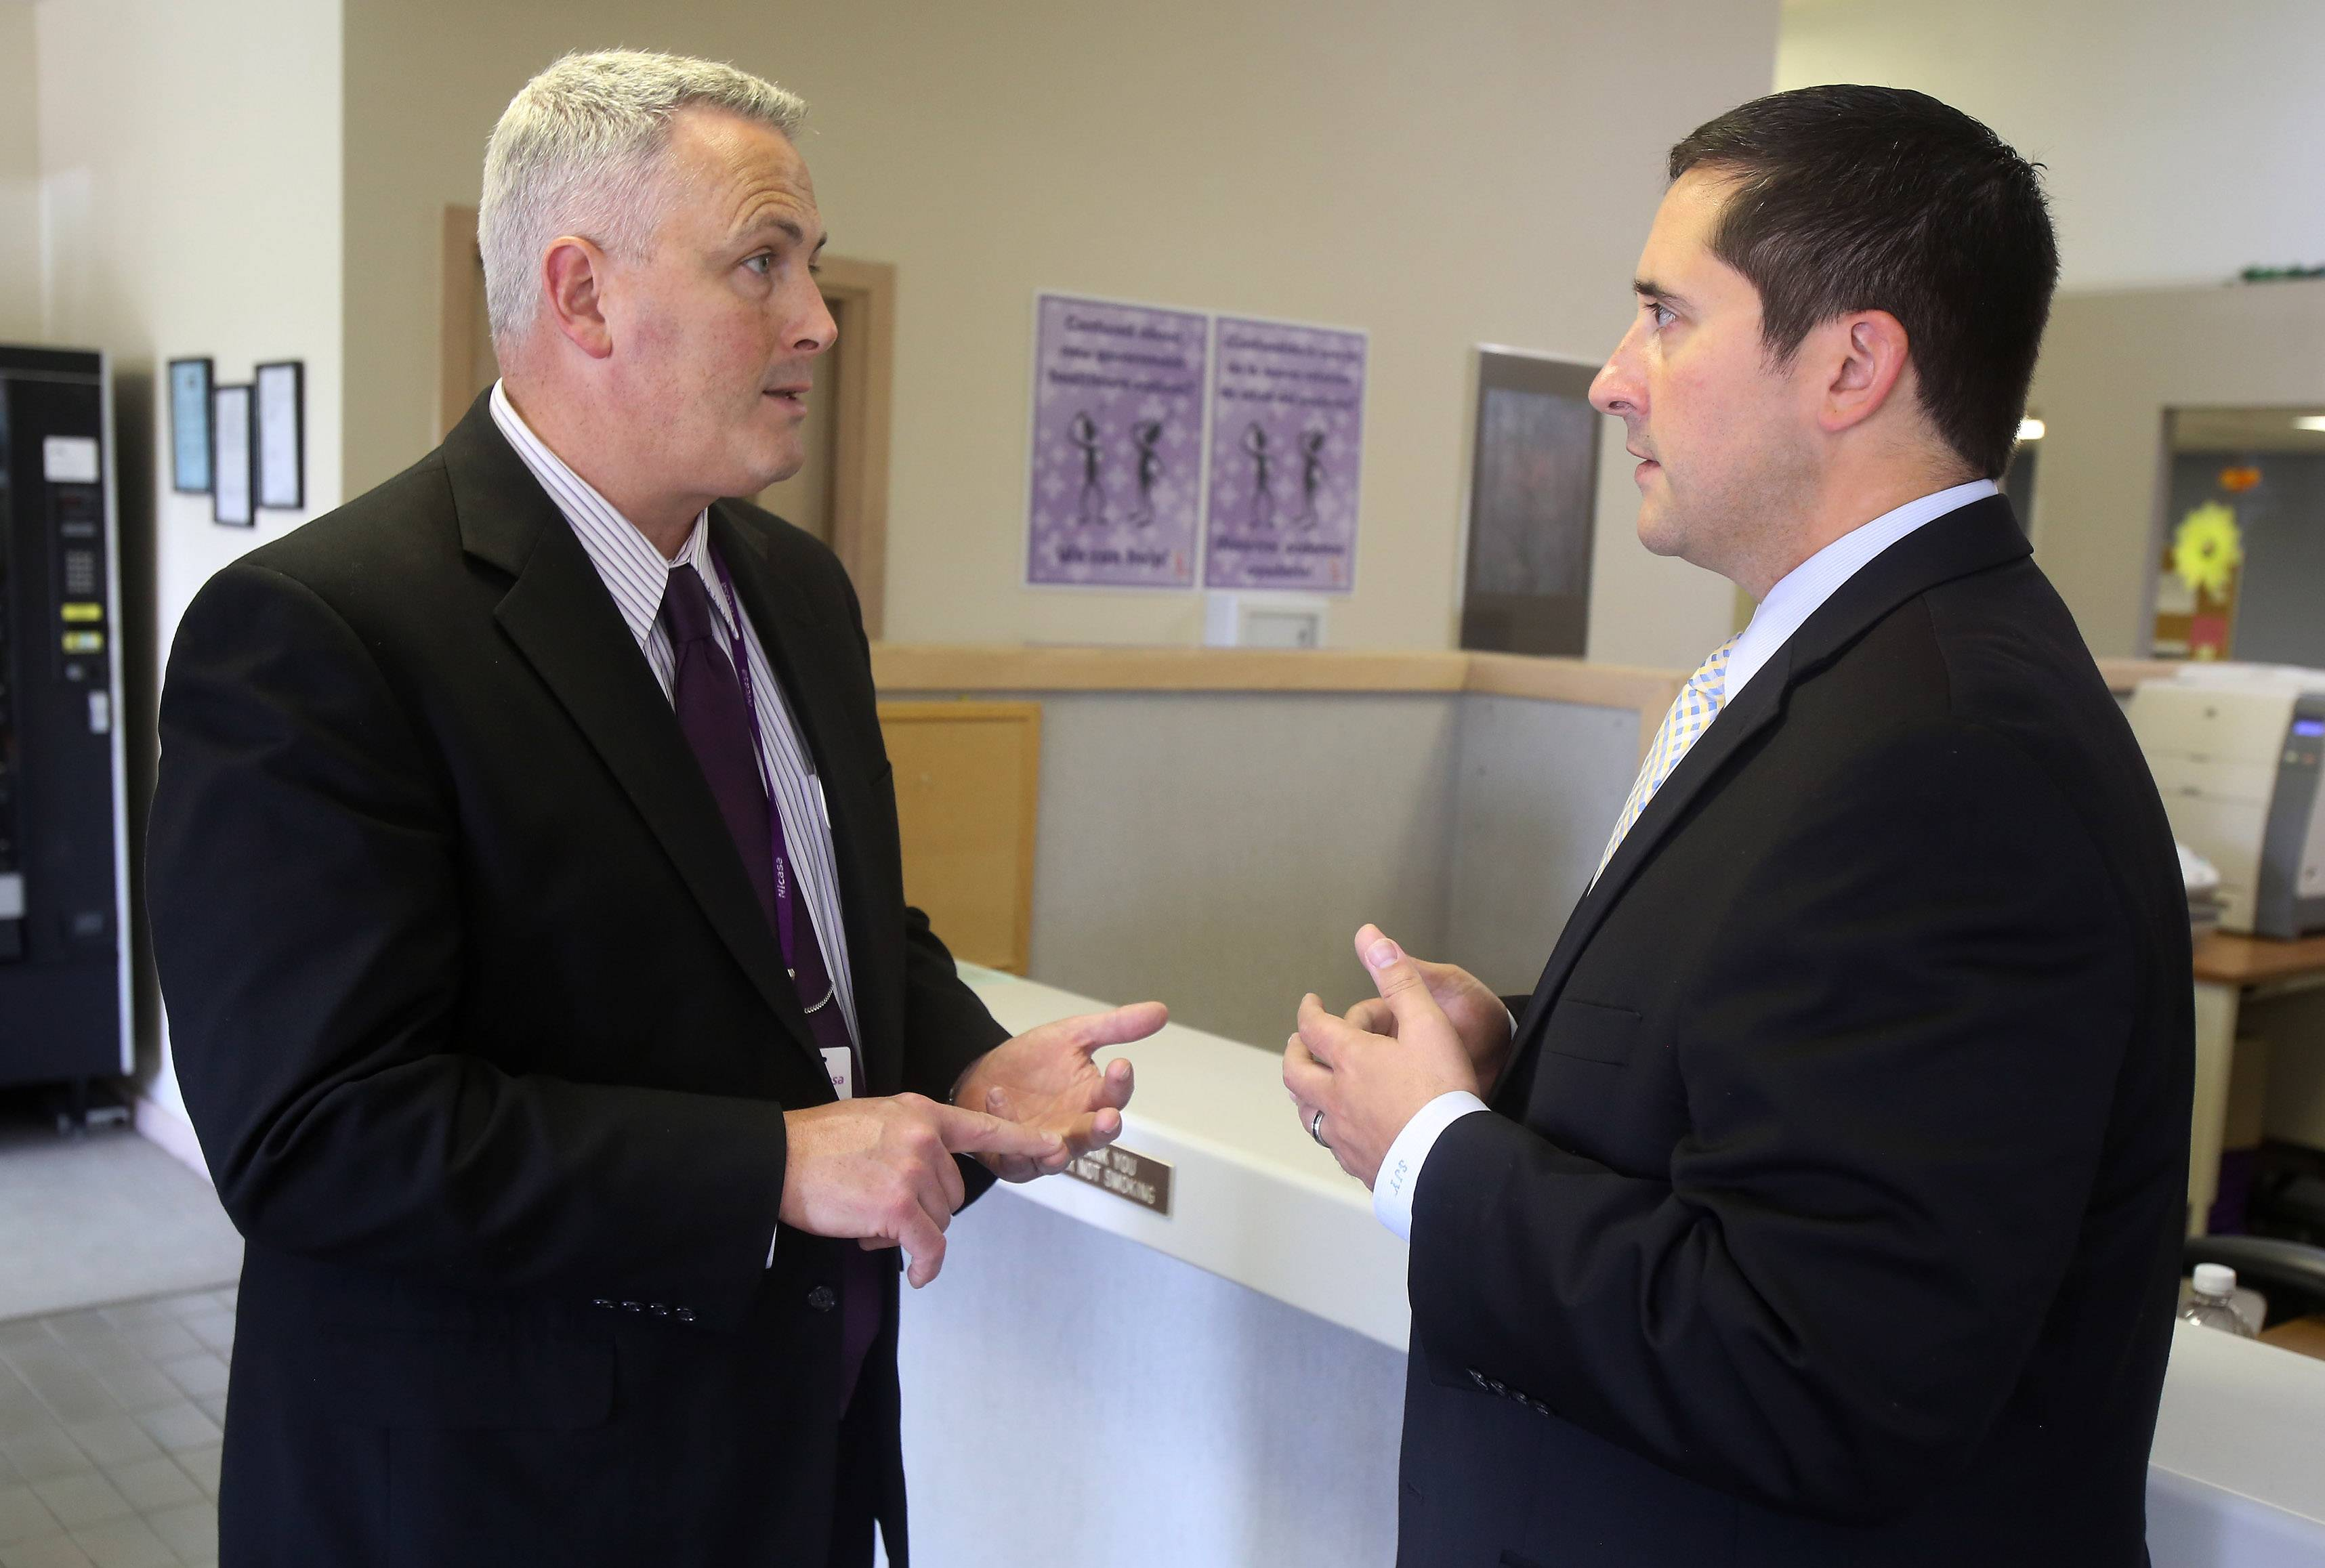 Bruce Johnson, CEO of Nicasa Behavioral Health Services in Round Lake, discusses the problem of heroin use in the suburban area with state Rep. Sam Yingling of Grayslake, who is chairman of the state legislature's heroin task force.